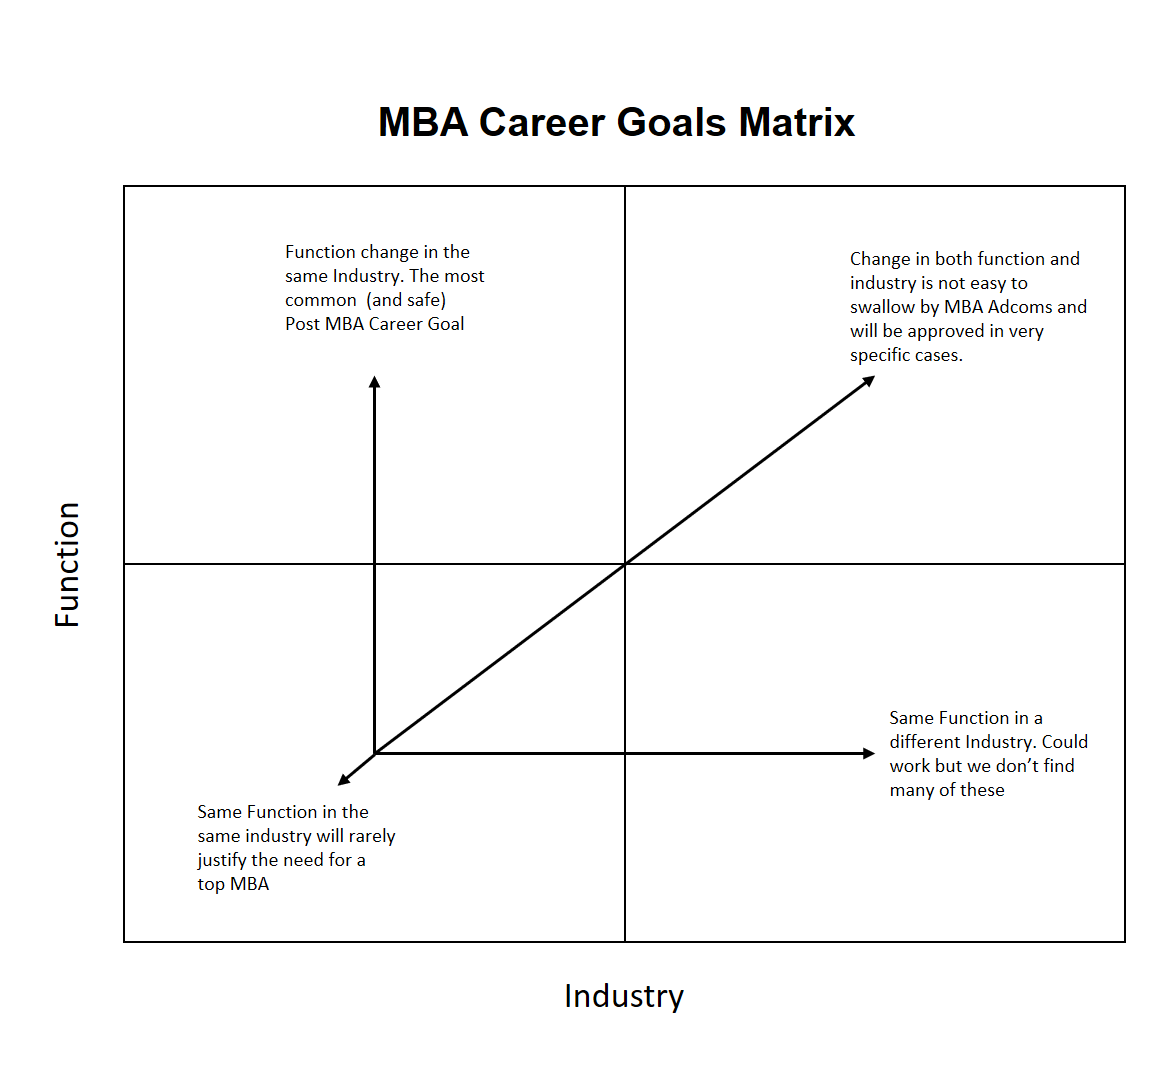 insead job description essay analysis ivy mba consulting career matrix